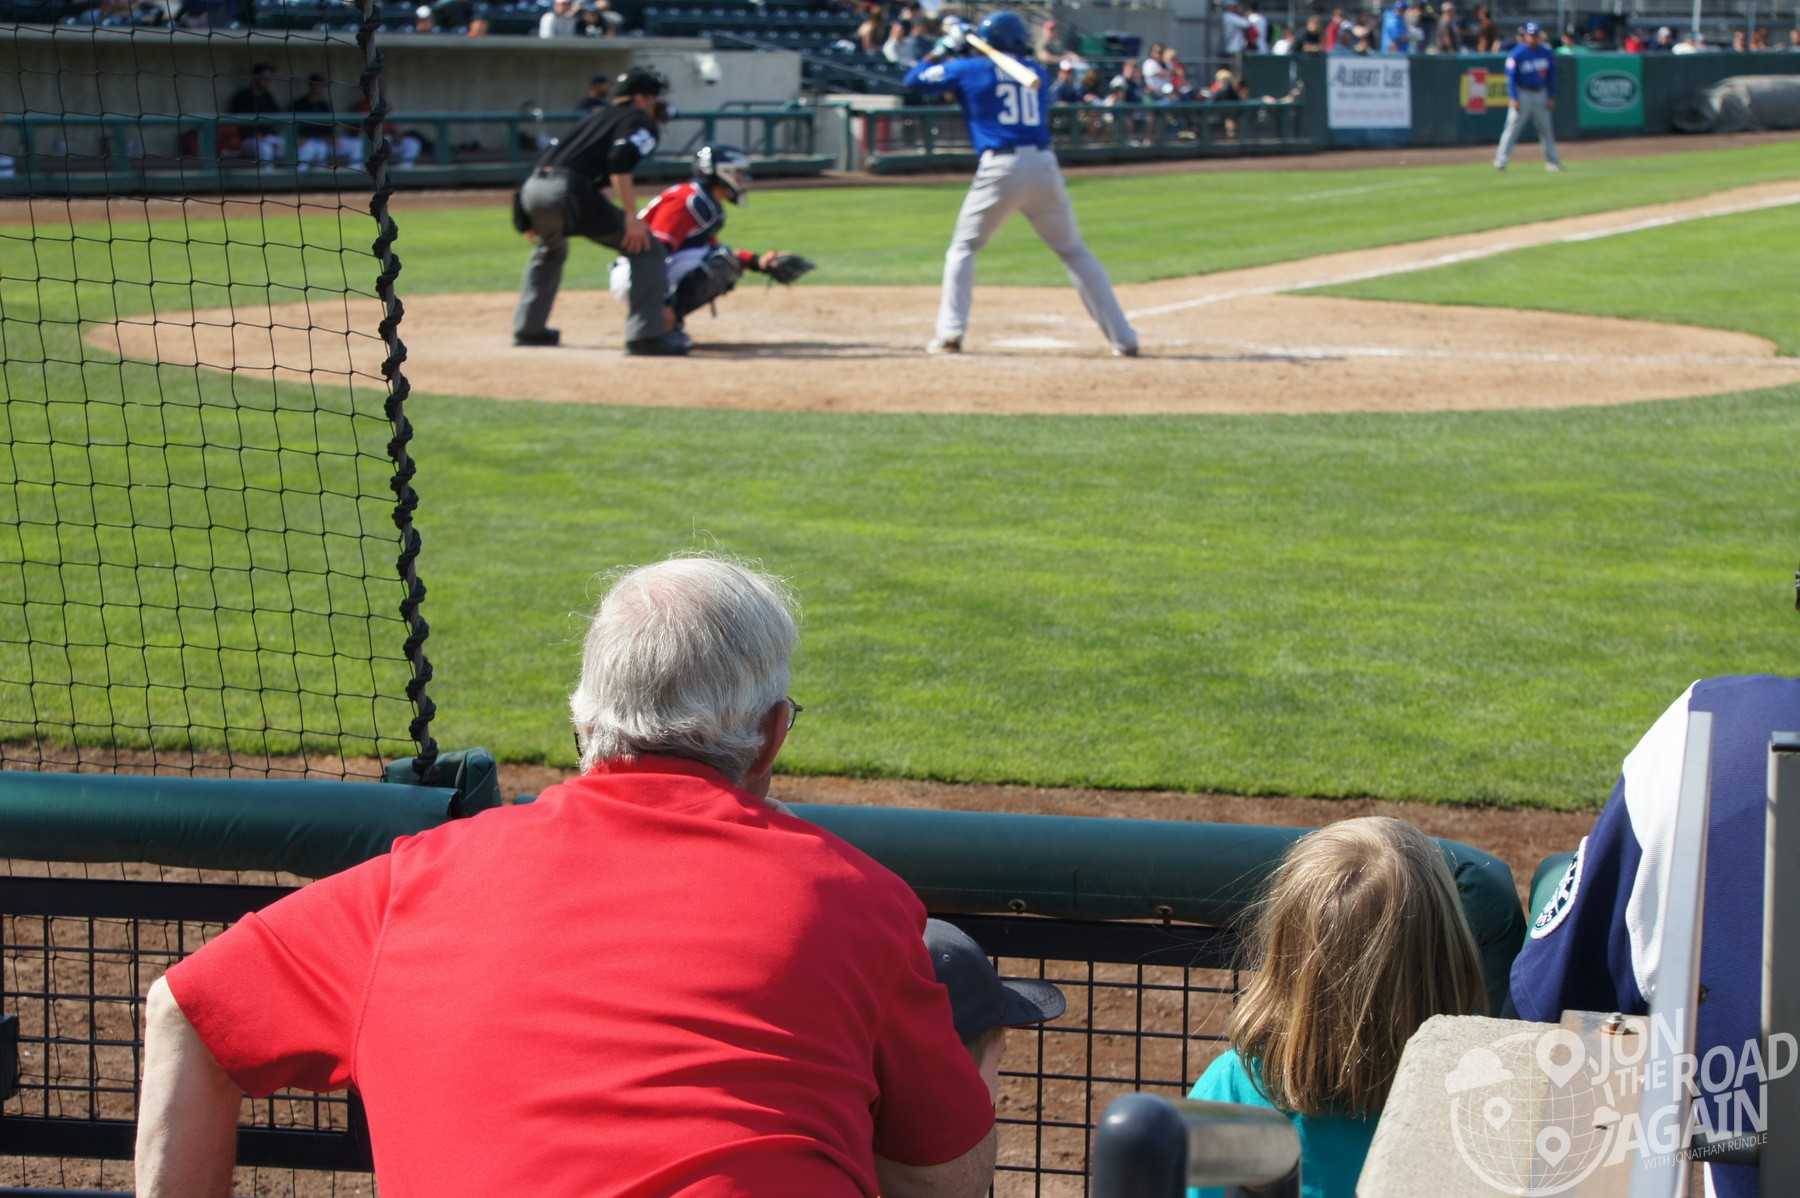 Rainiers Staff help the kids get a baseball